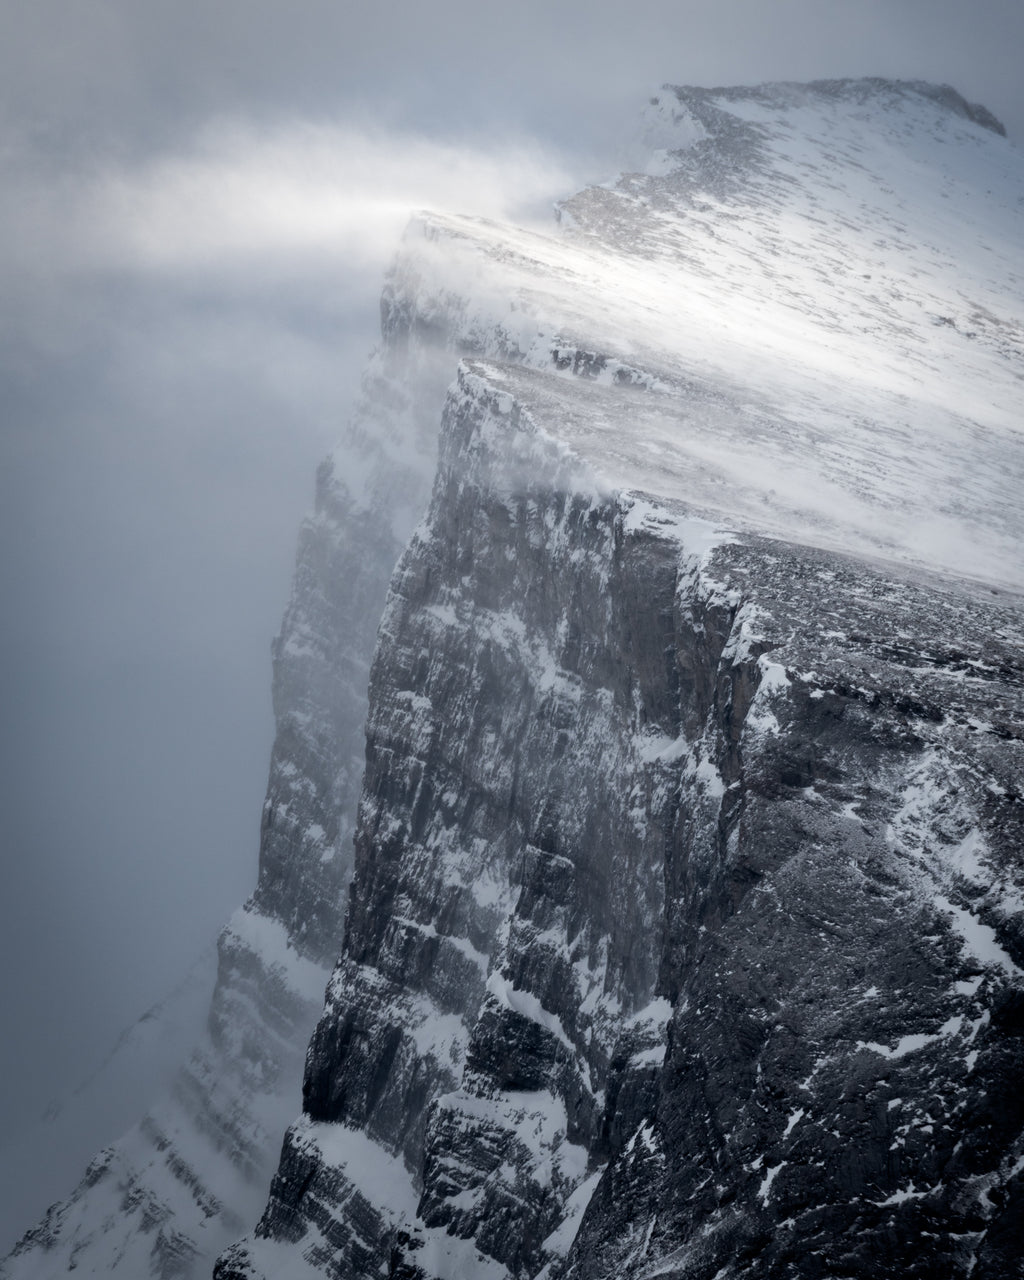 Snow sweeps off summit of Mount Rundle, Banff National Park, monochrome landscape photography